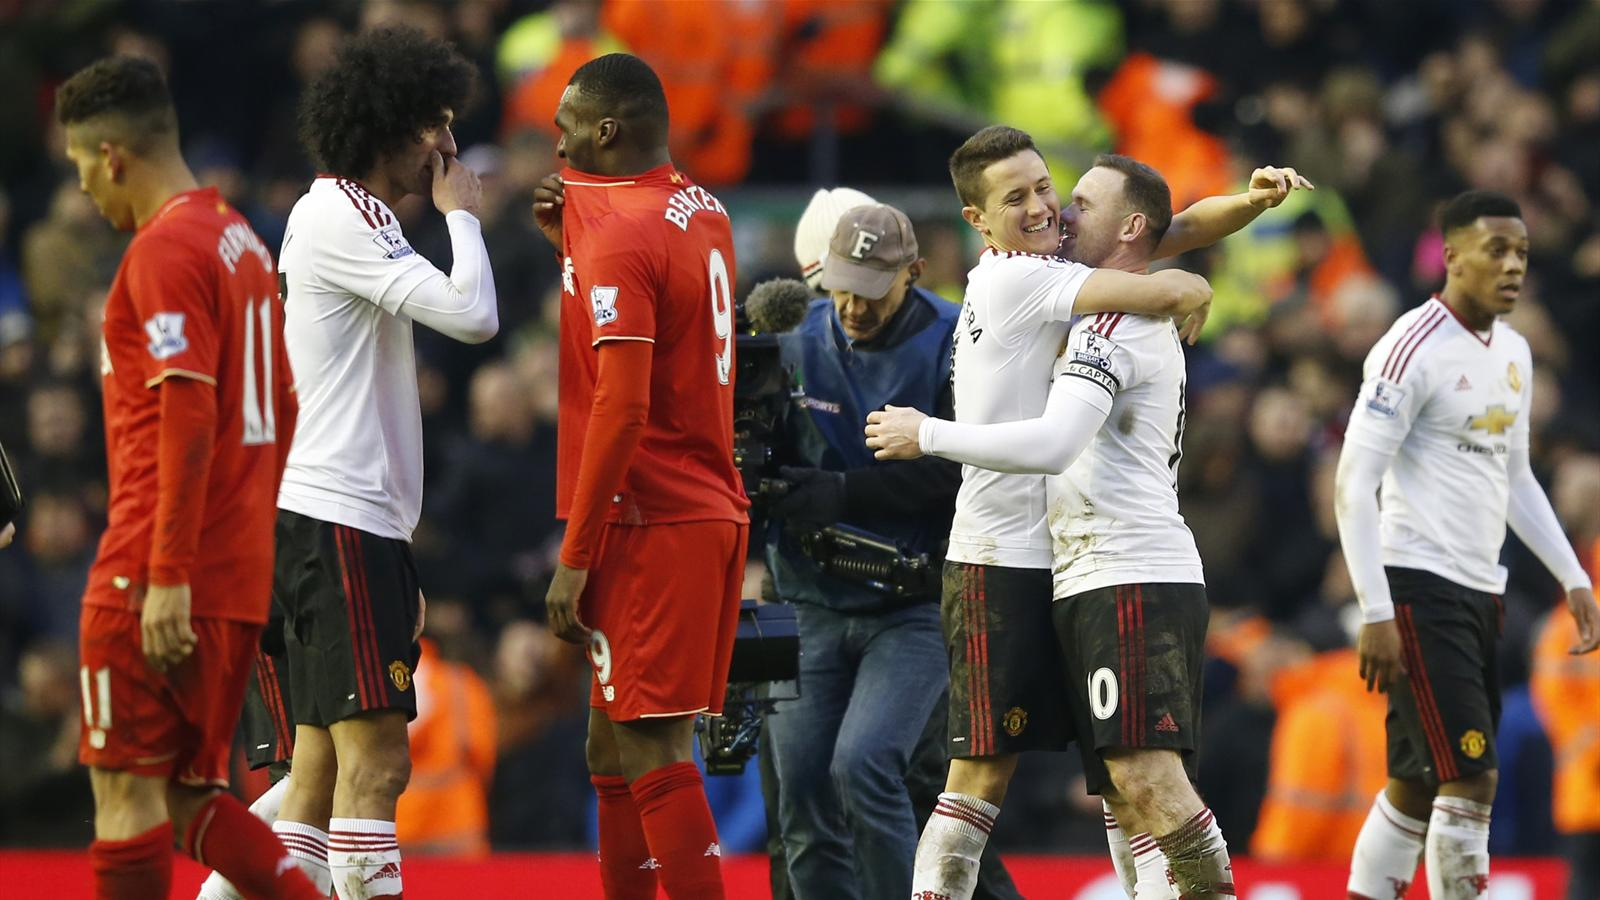 Liverpool's Christian Benteke and Manchester United's Marouane Fellaini as Ander Herrara and Wayne Rooney celebrate at the end of the match